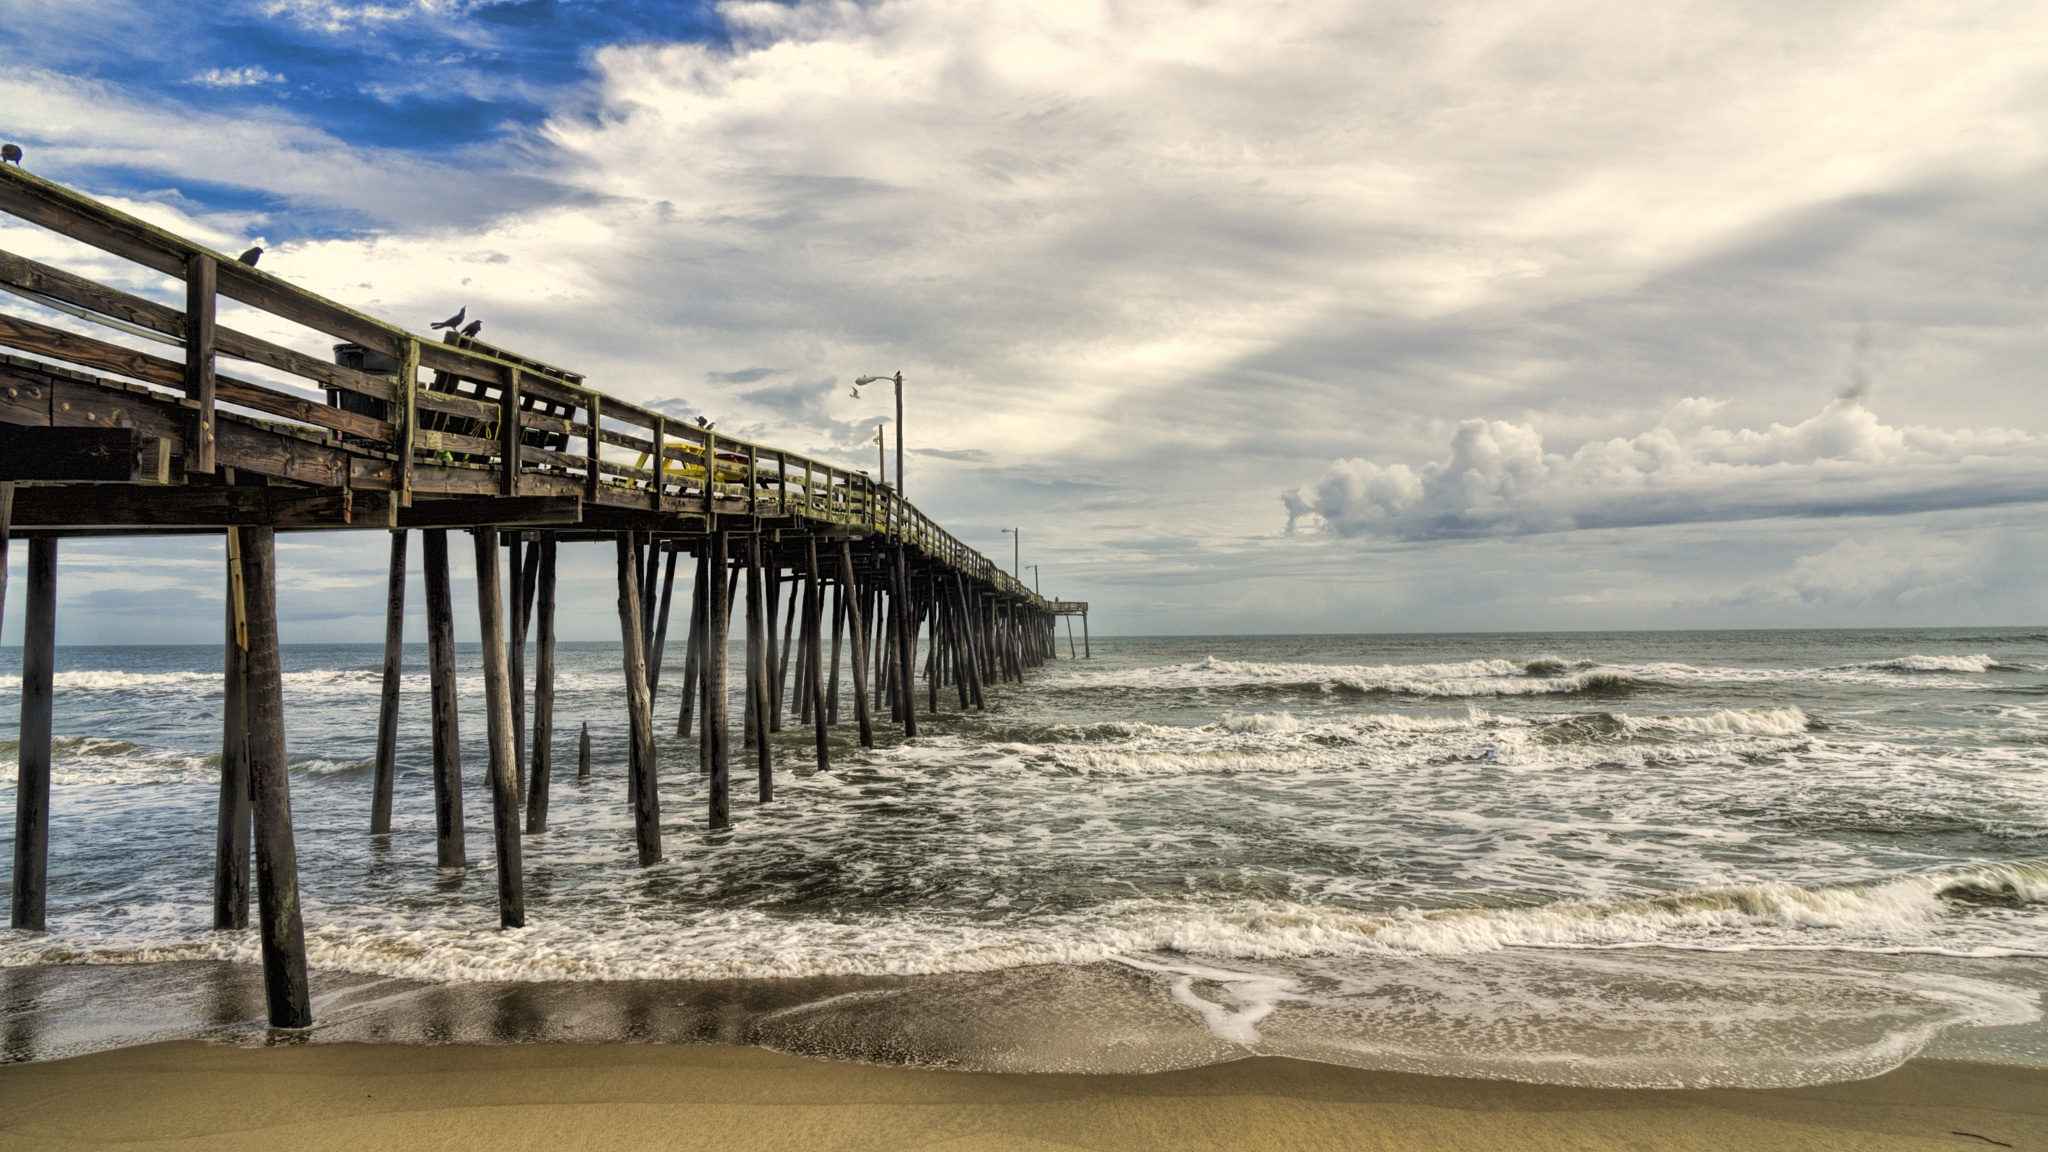 November OBX Afternoon by mjdrhd